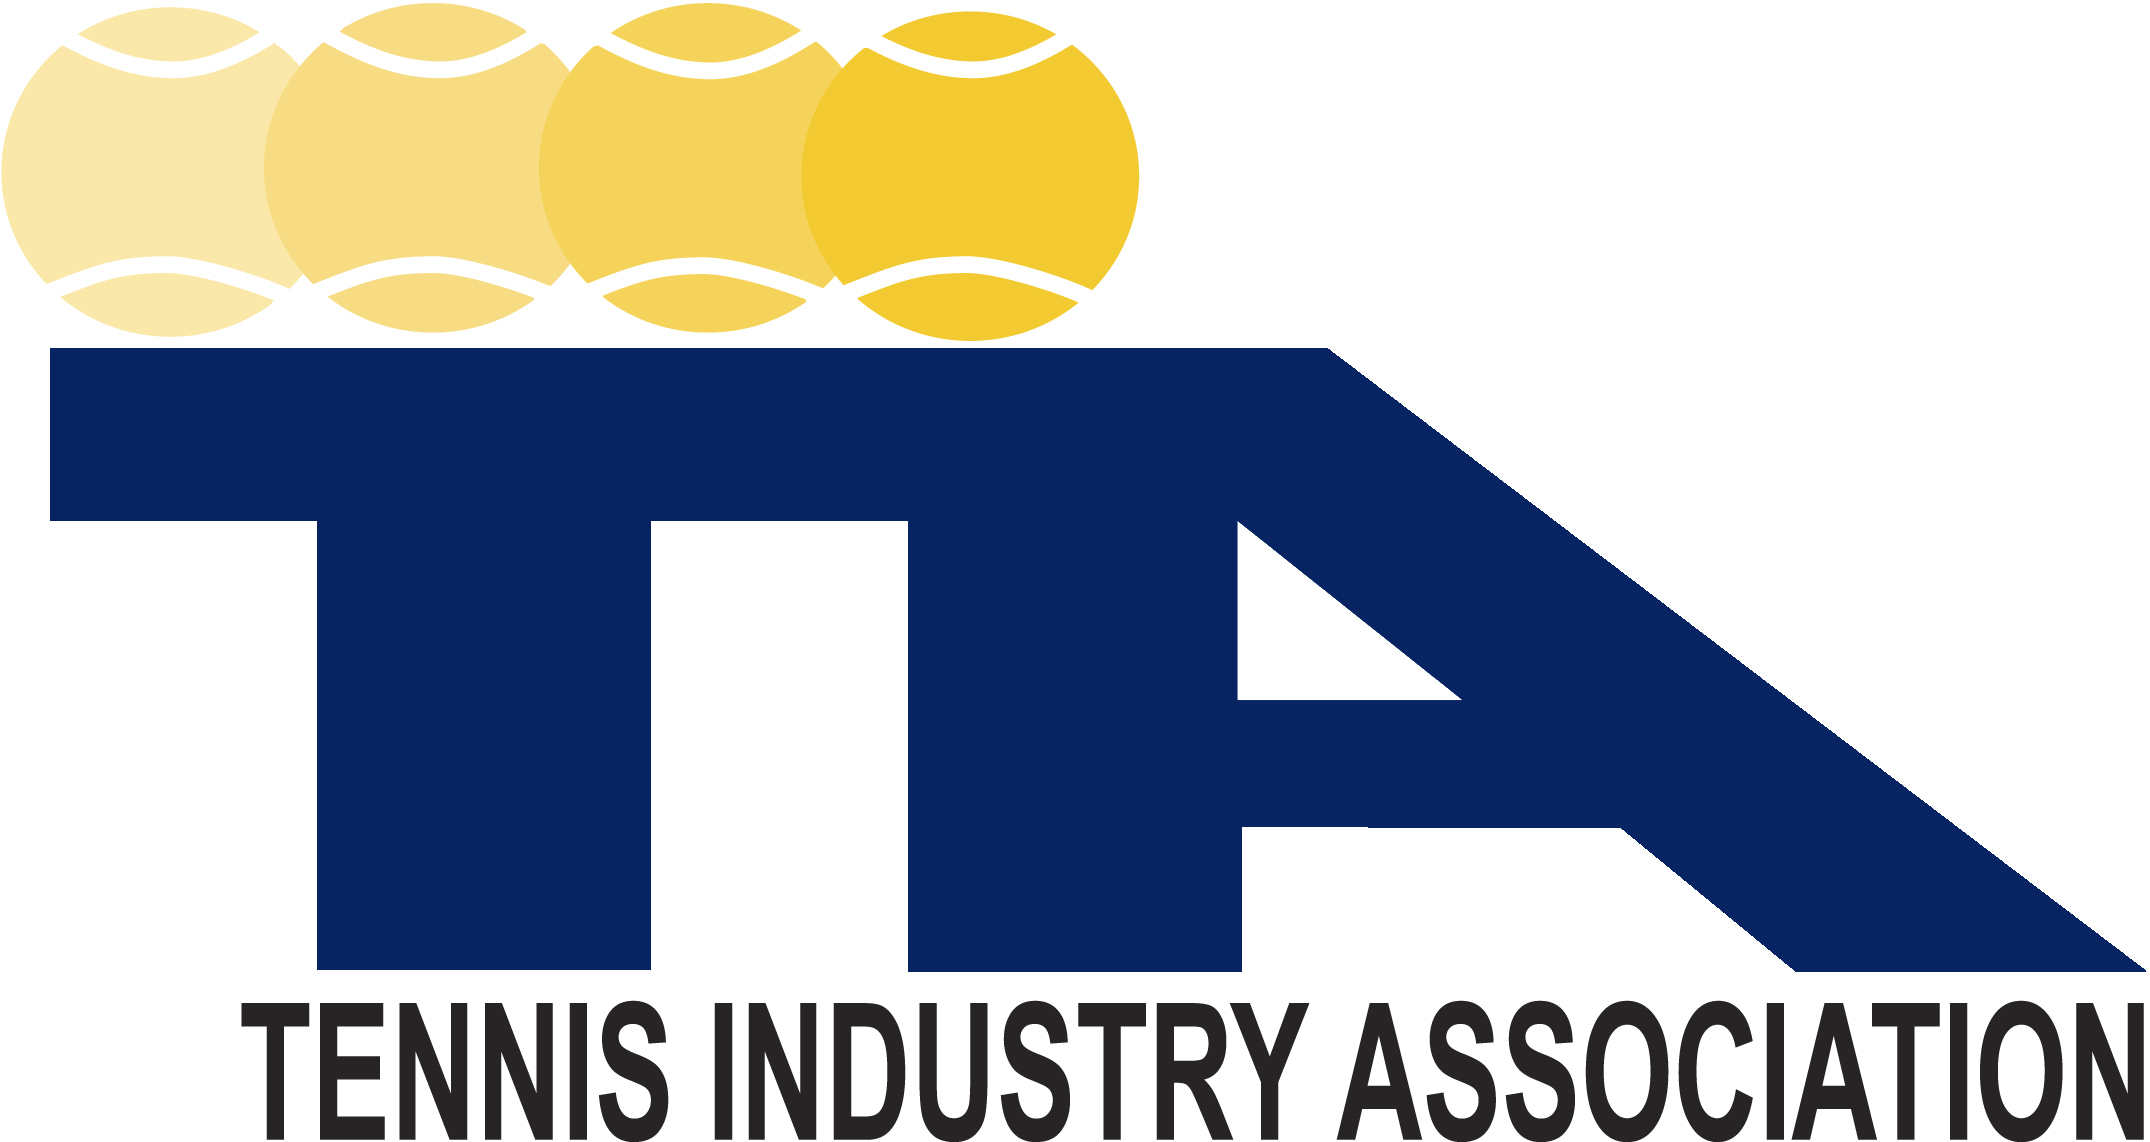 682e85a68 TENNIS INDUSTRY ASSOCIATION is Generic and Therefore Not a Trademark ...